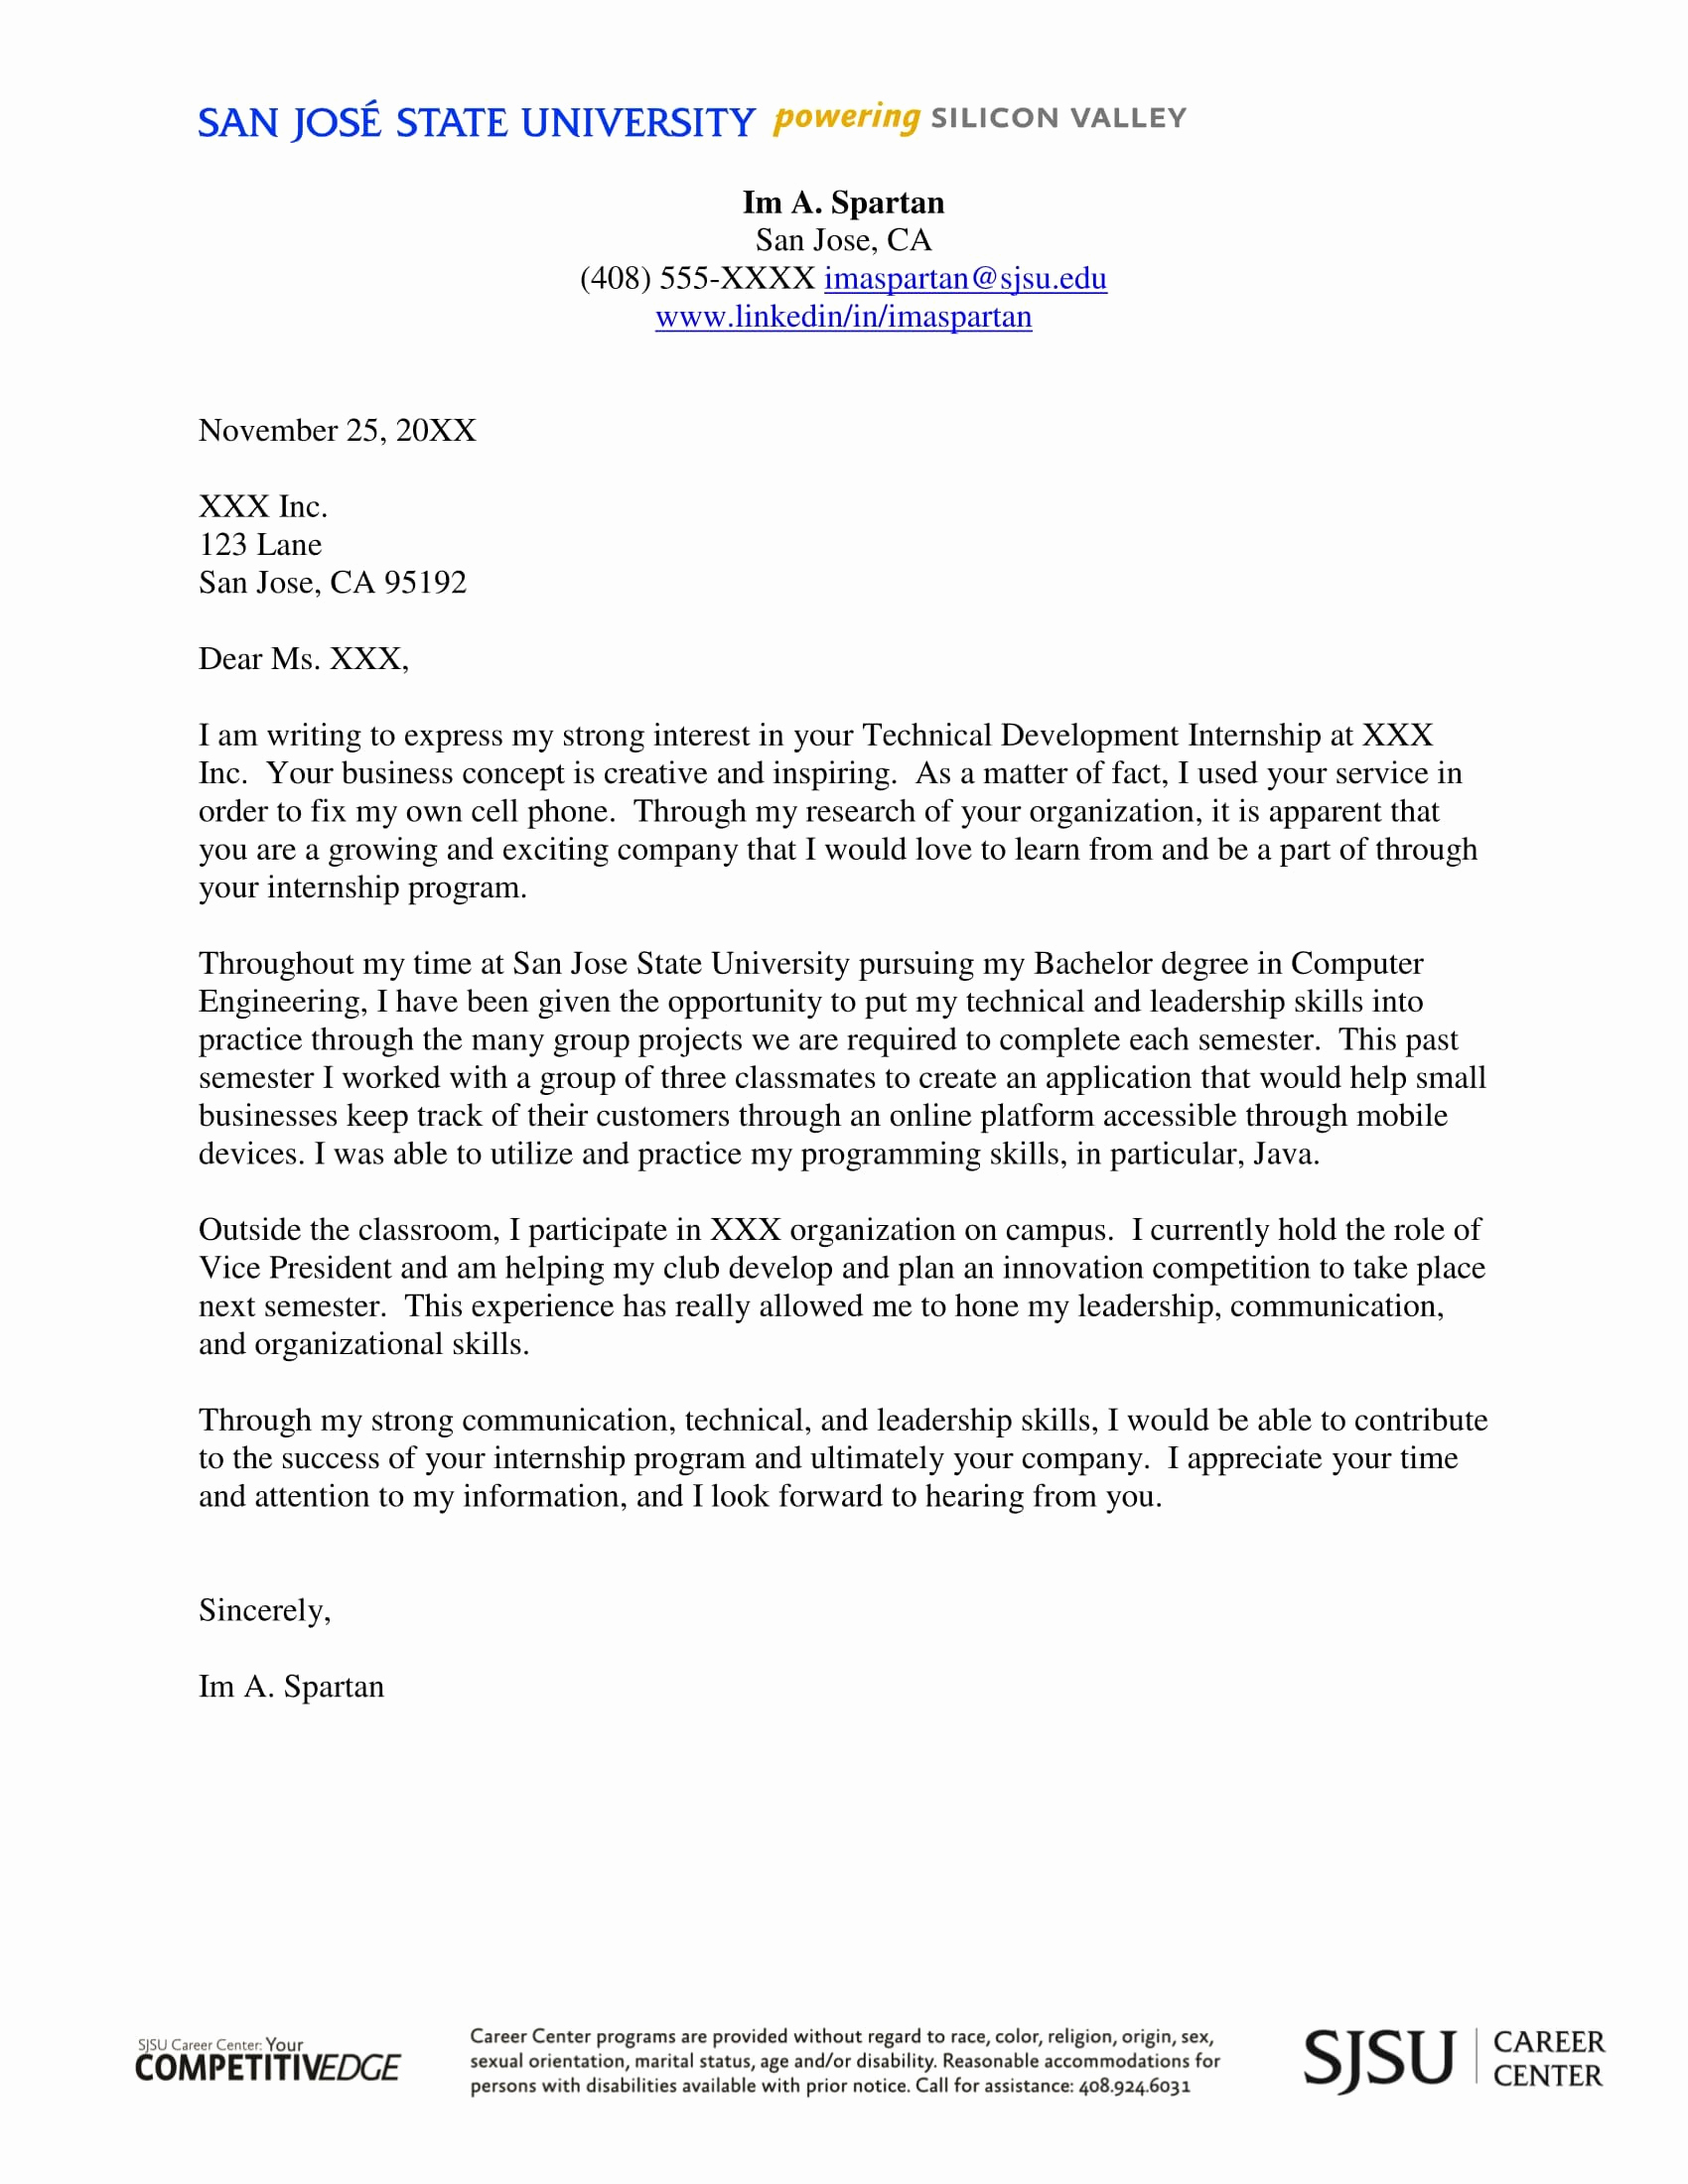 Internship Cover Letter Template Best Of 30 Cover Letter Examples for Internship Cover Letter